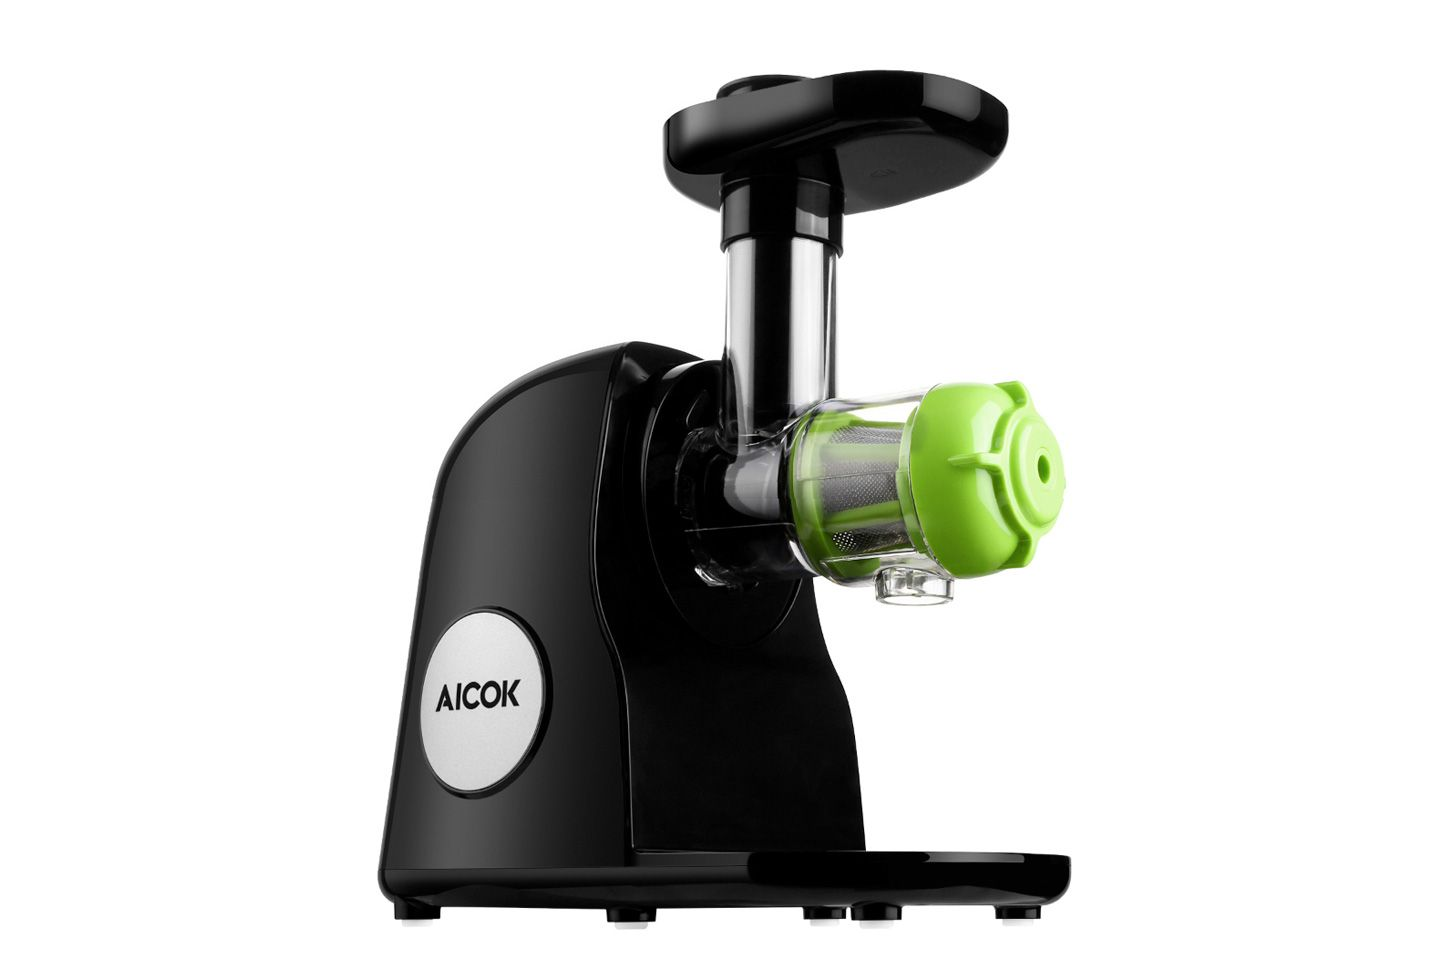 Aicok amr521 masticating juicer review hearty blends